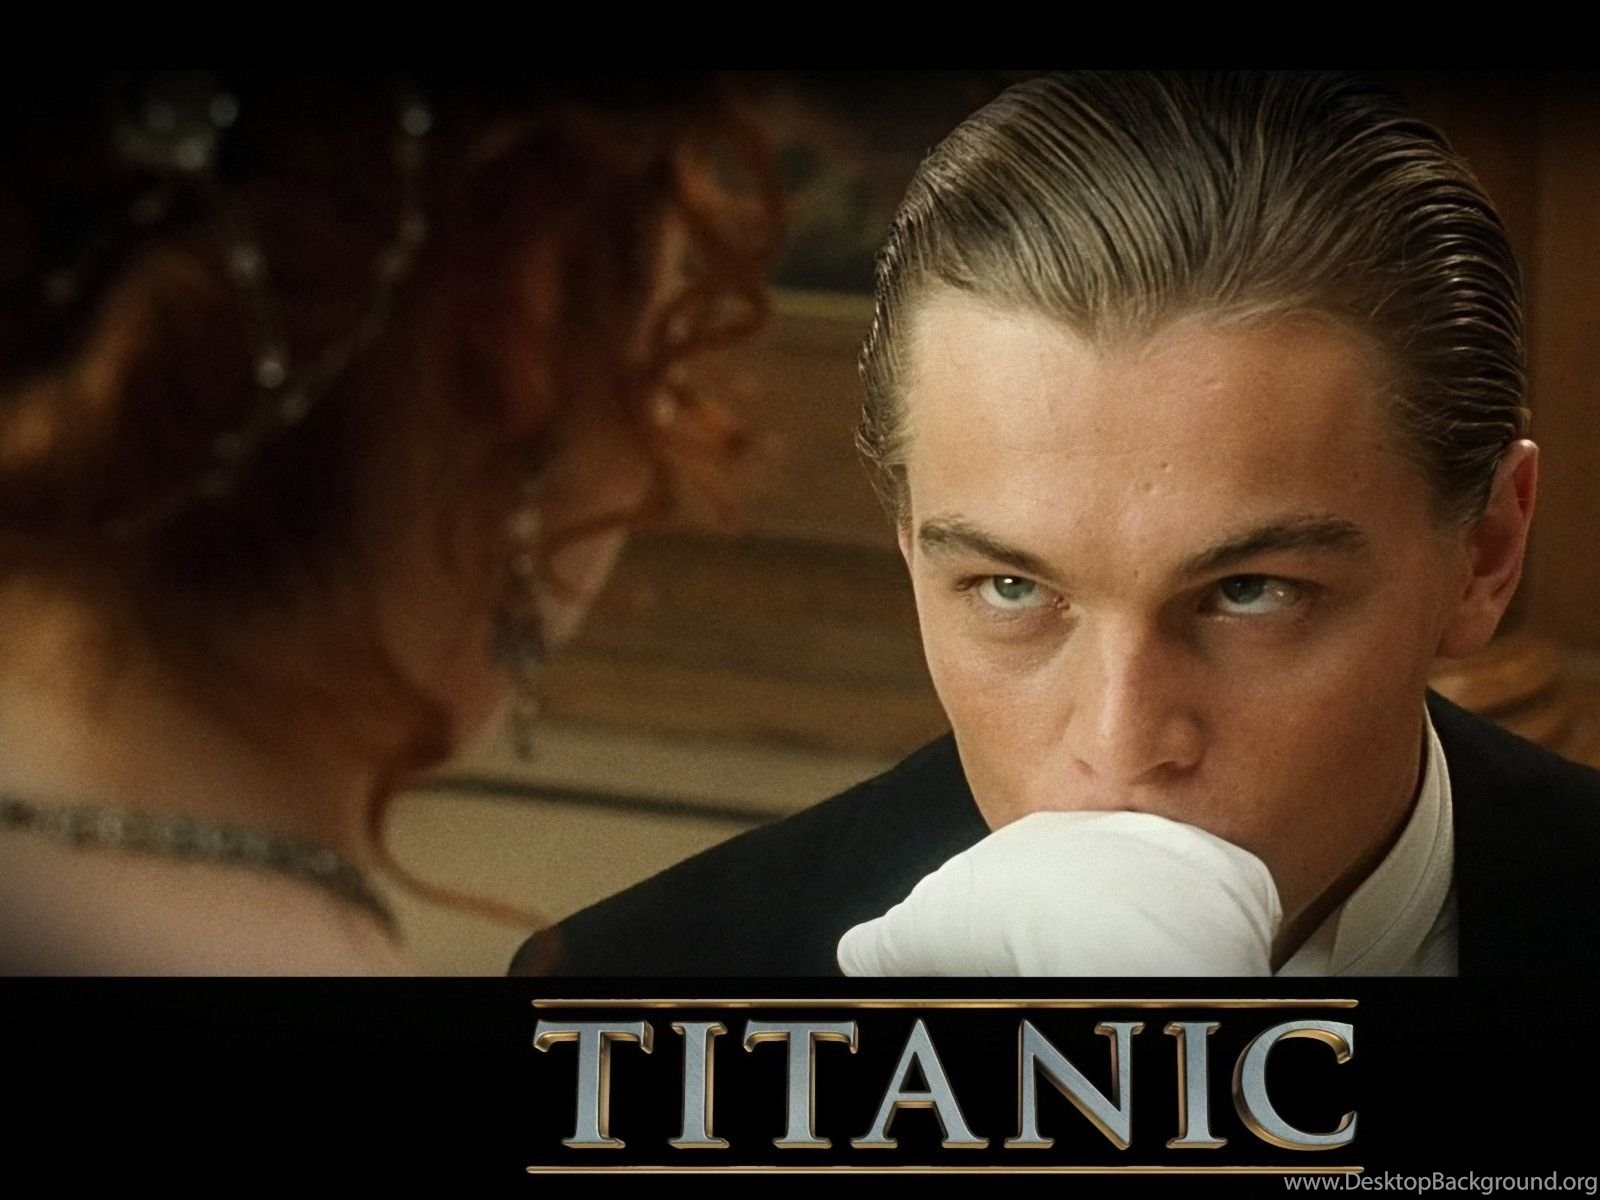 titanic movie facts wallpapers free titanic movie facts  desktop